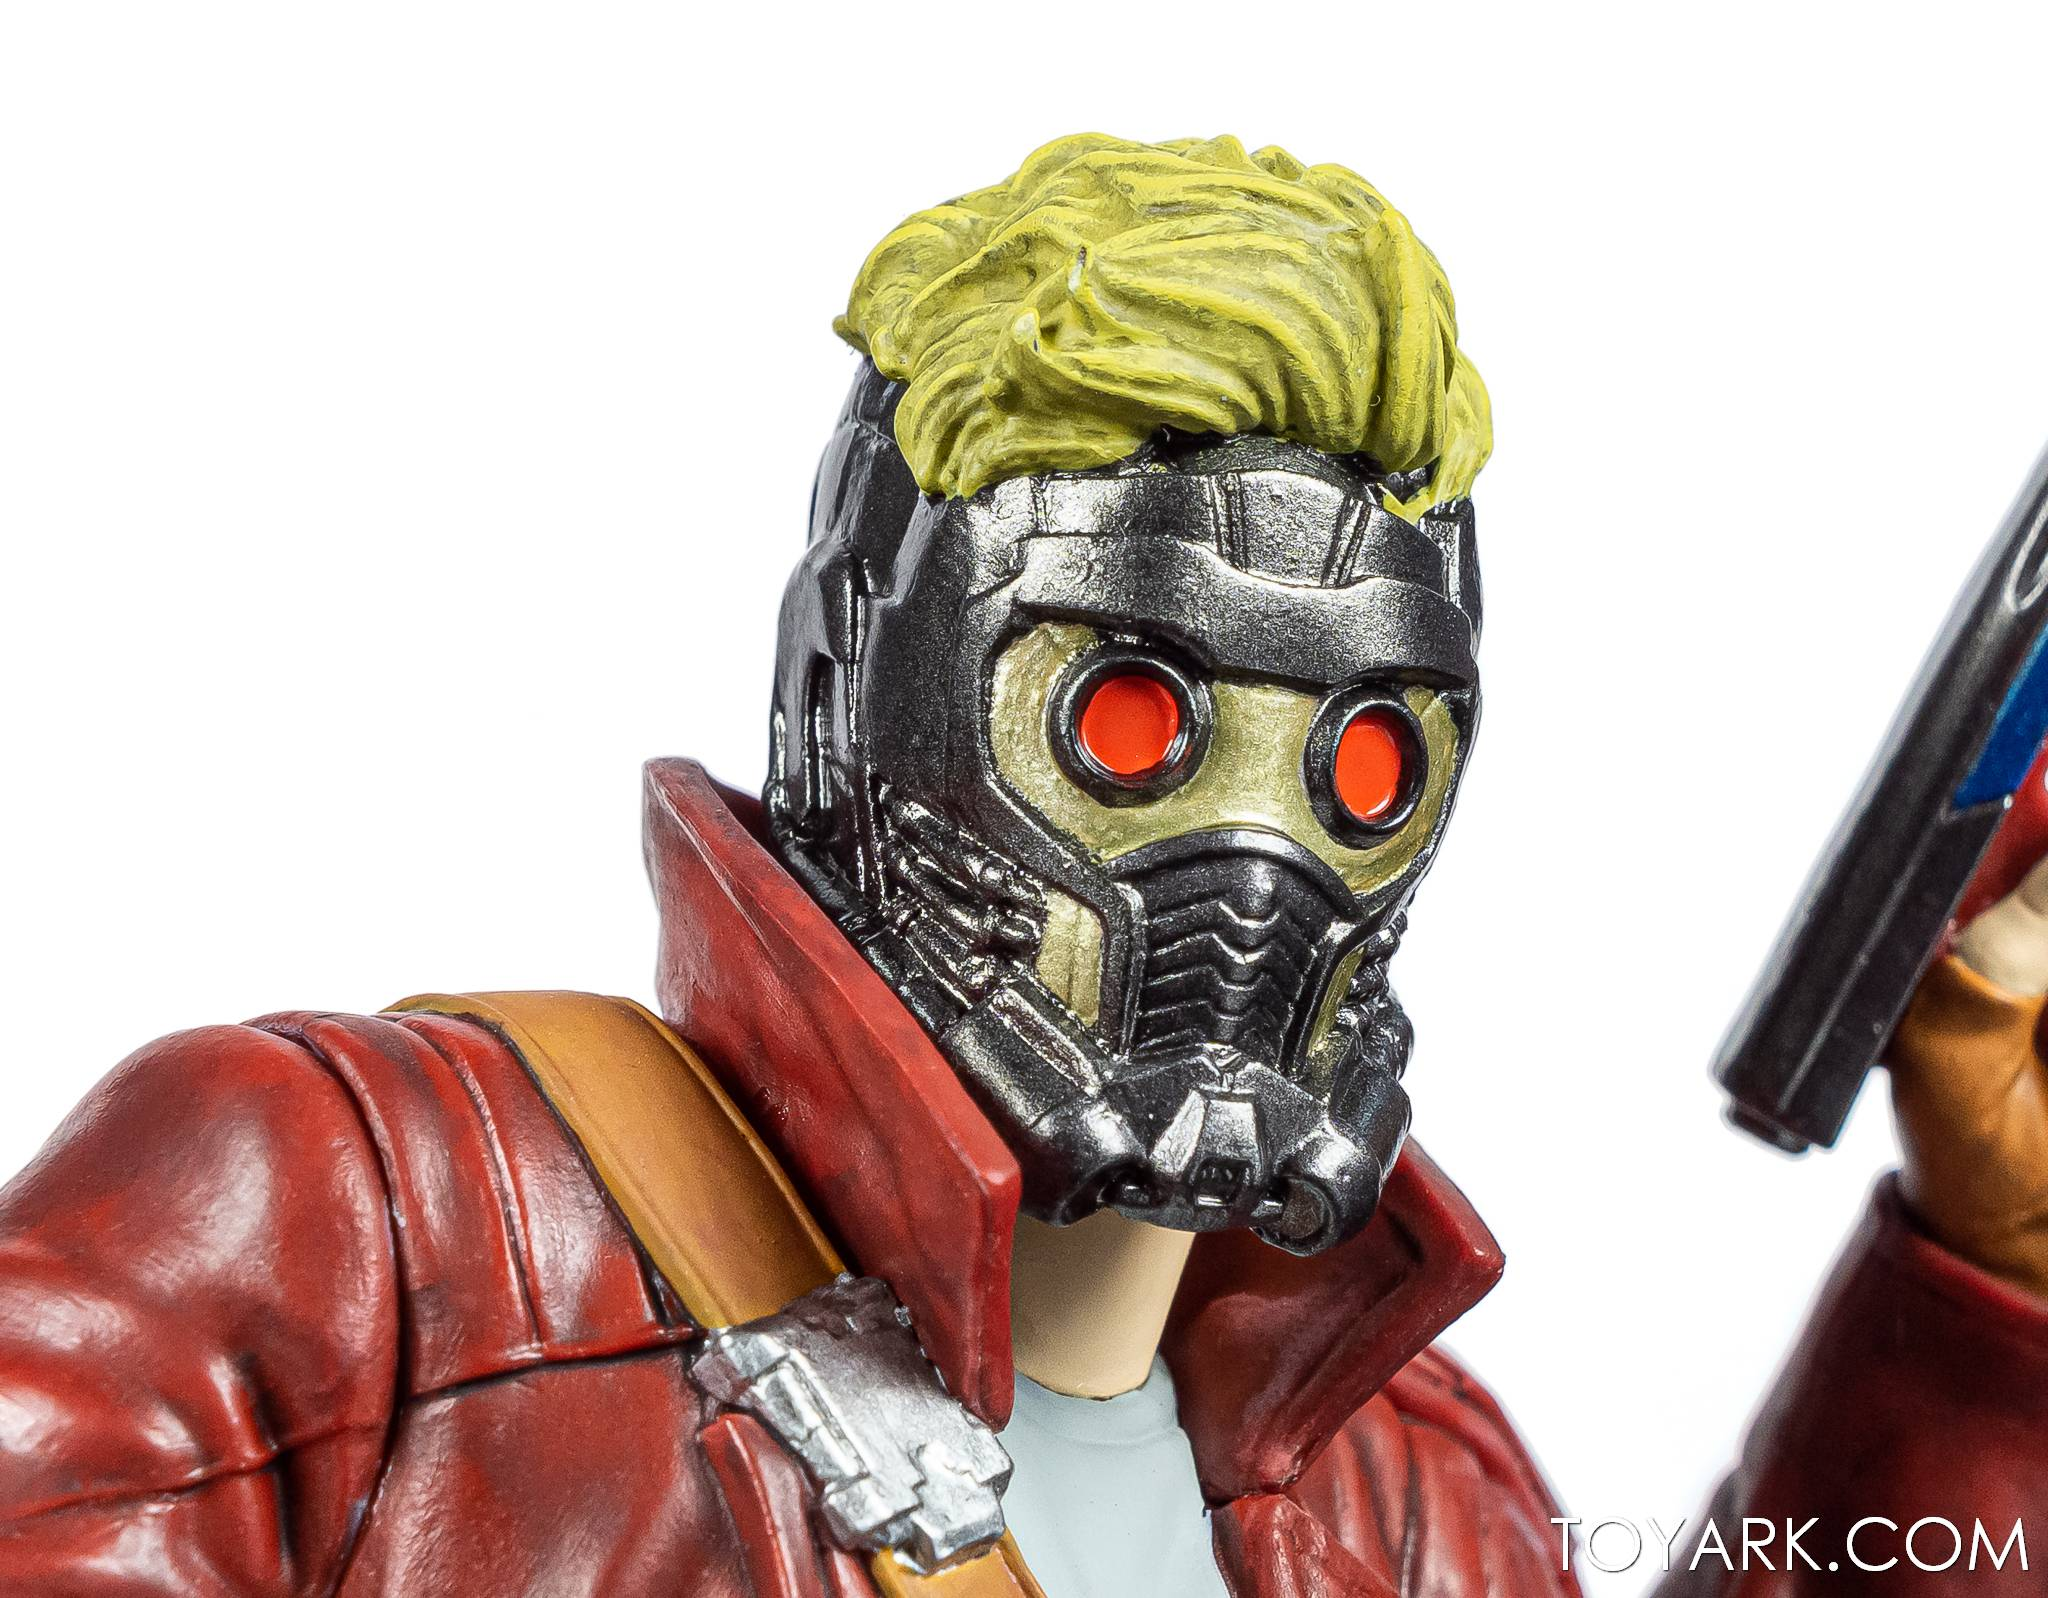 https://news.toyark.com/wp-content/uploads/sites/4/2021/04/Loot-Crate-GotG-Star-Lord-Bust-008.jpg